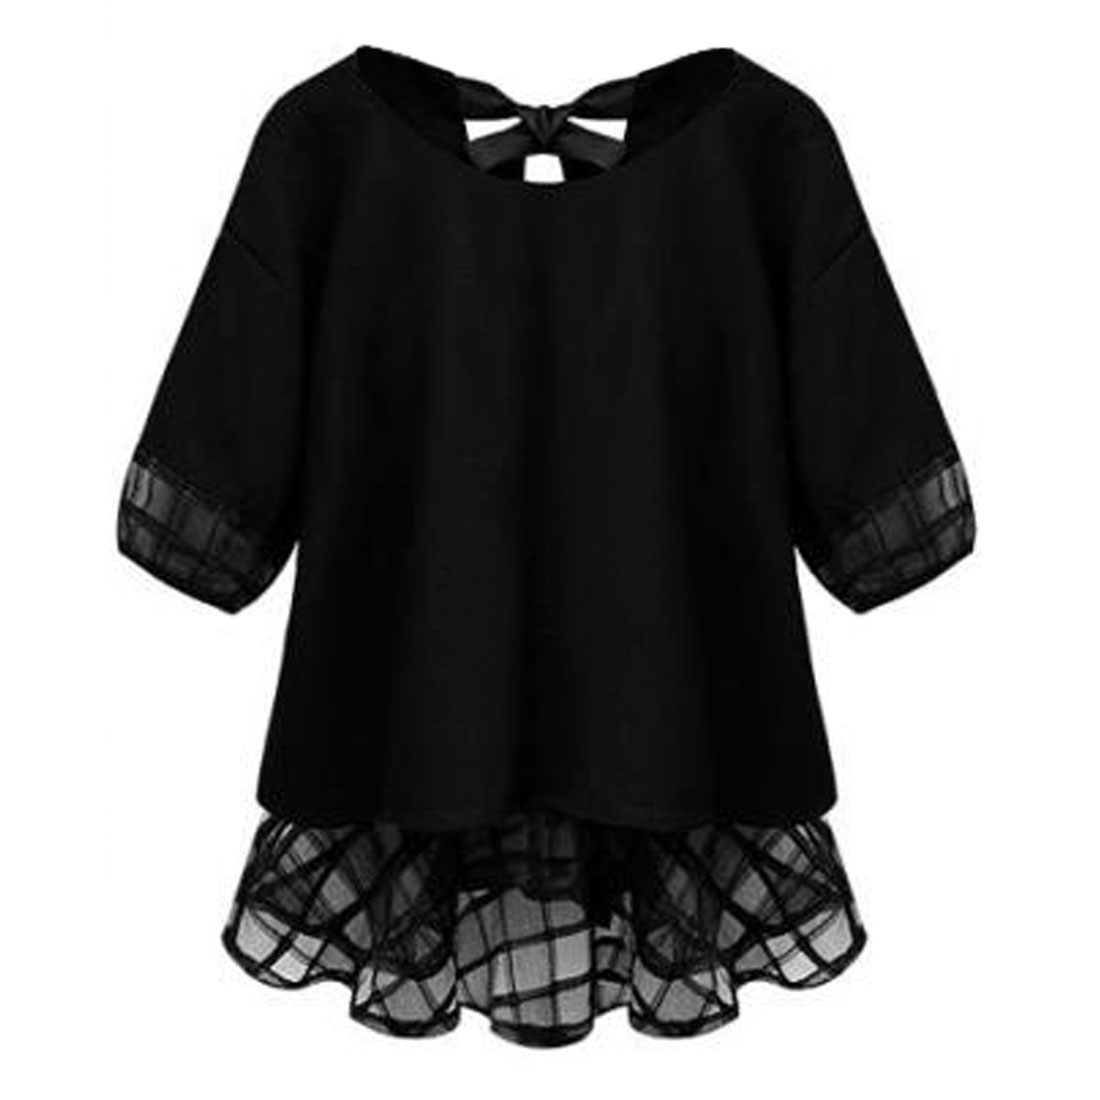 Allegra K Women's Round Neck Elbow Sleeves Semi Sheer Detail Chiffon Tops Black (Size S / 4)